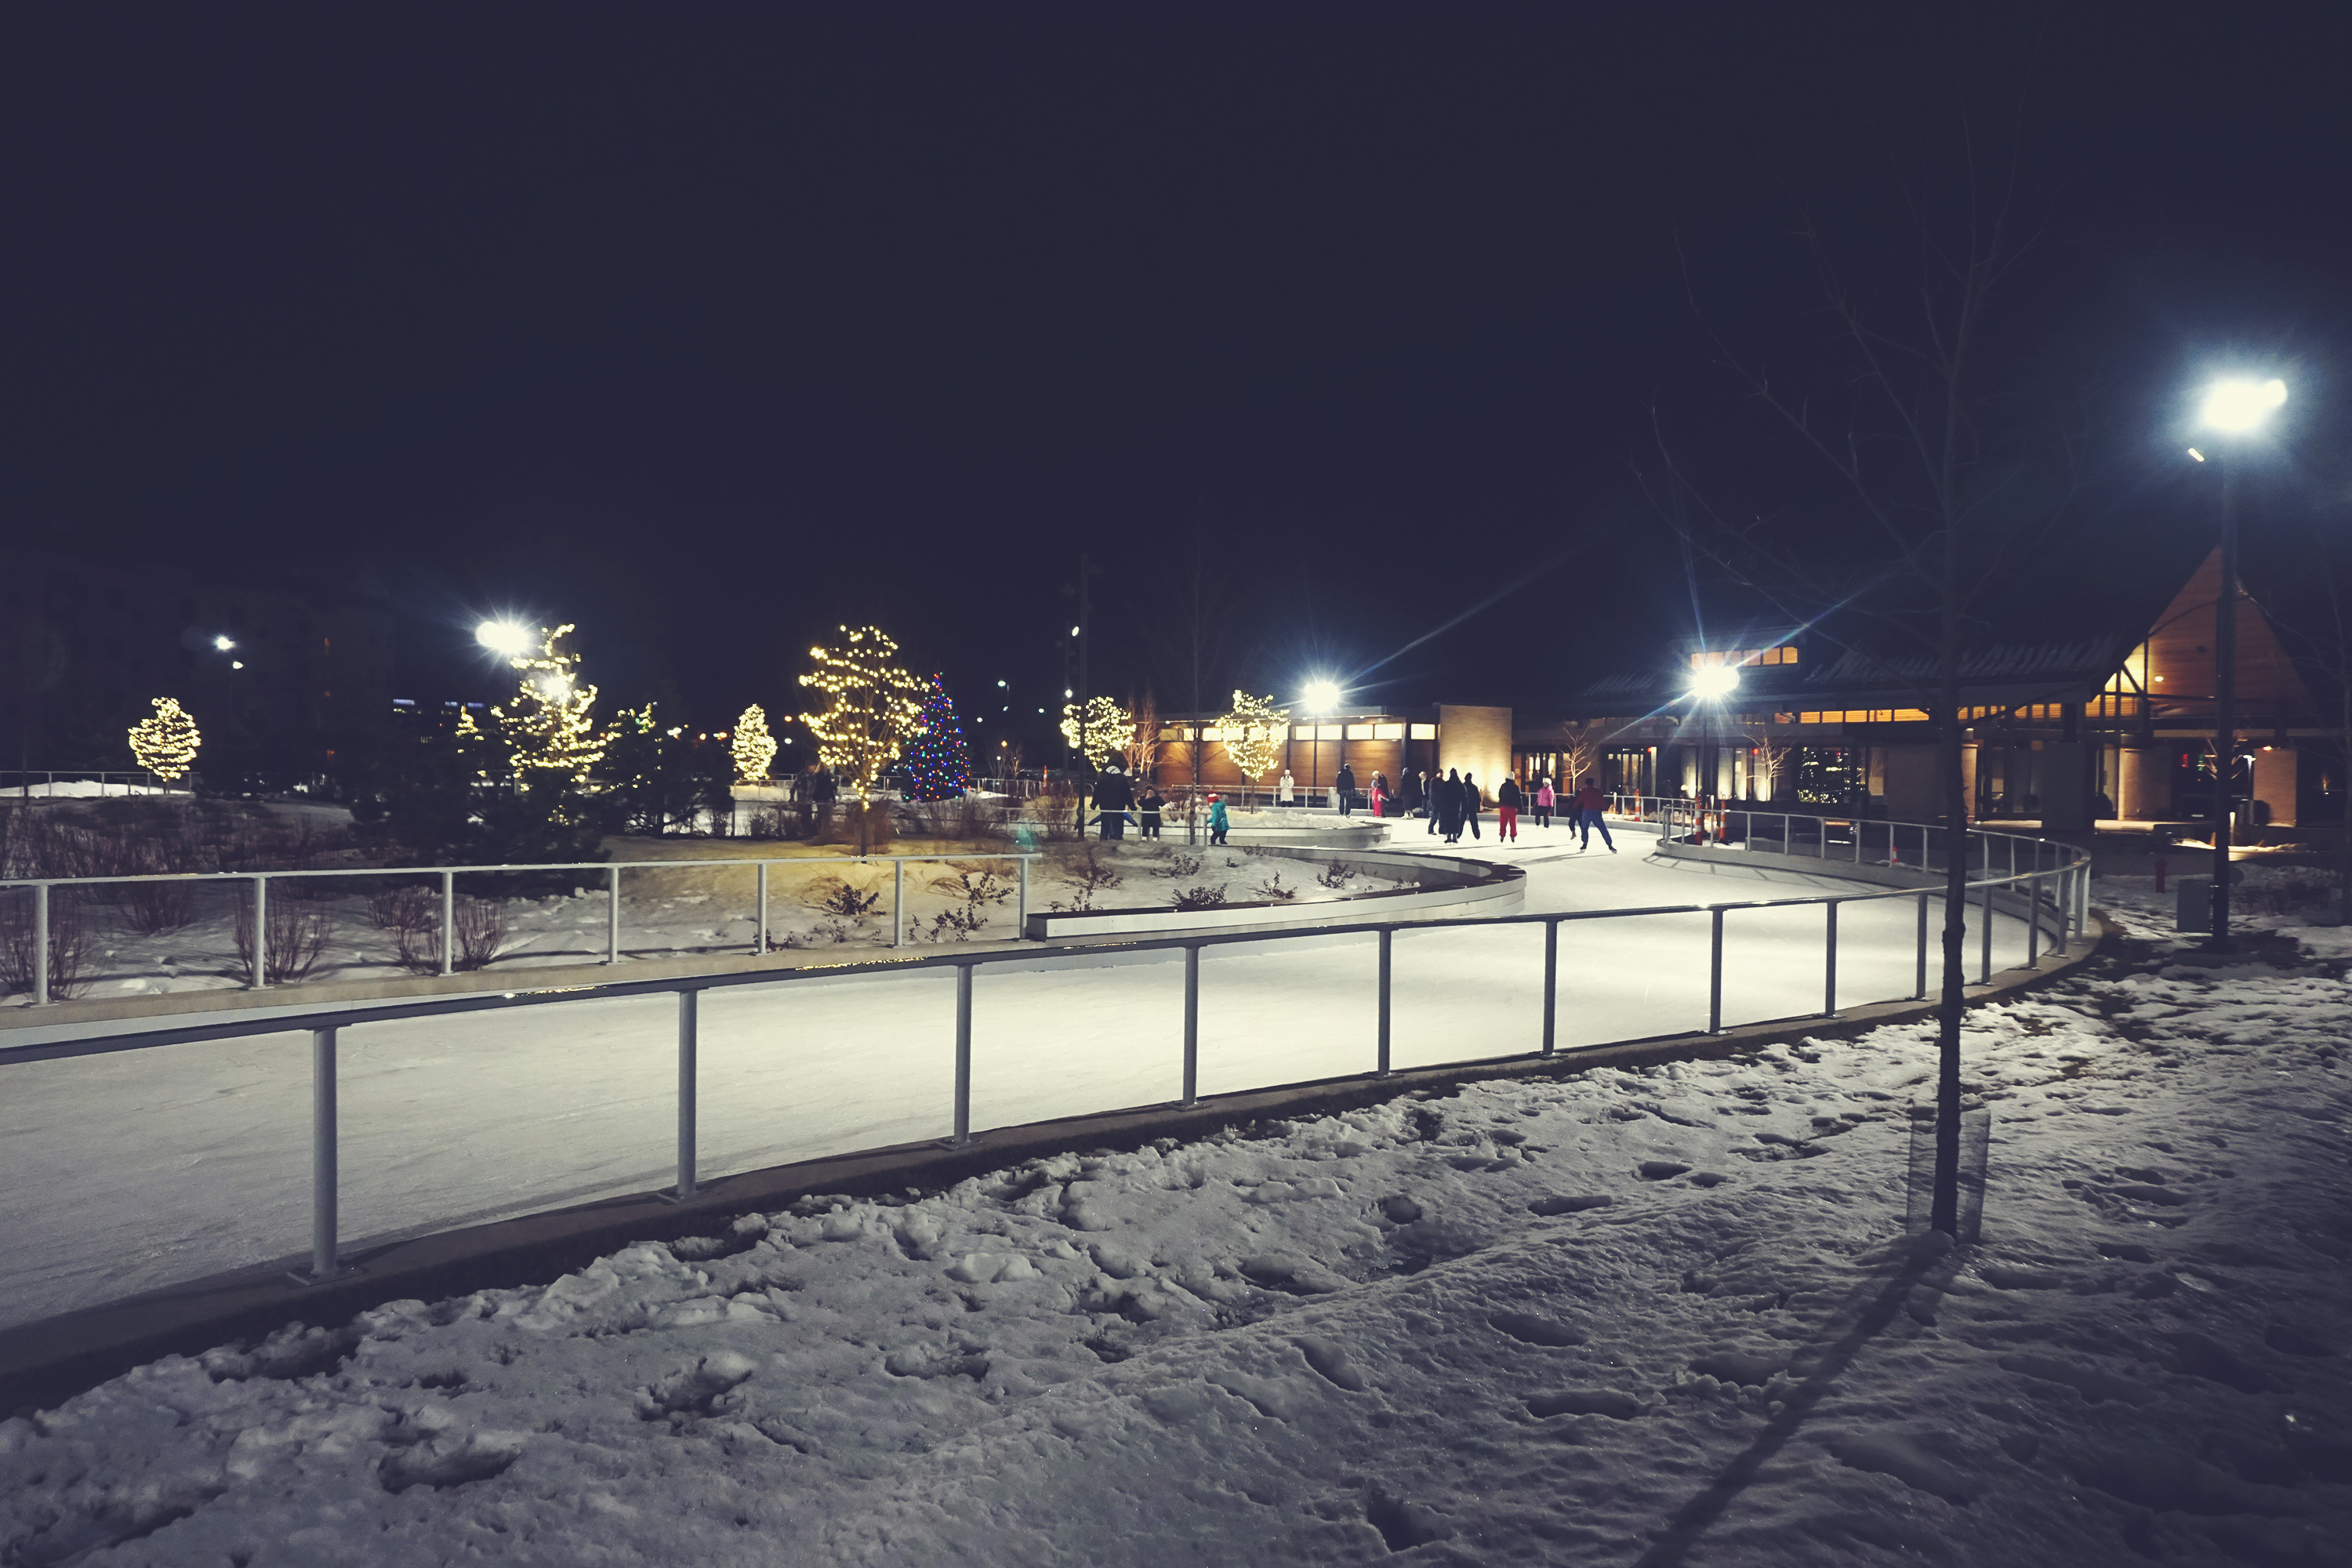 Ice skating trail at night with Christmas lights